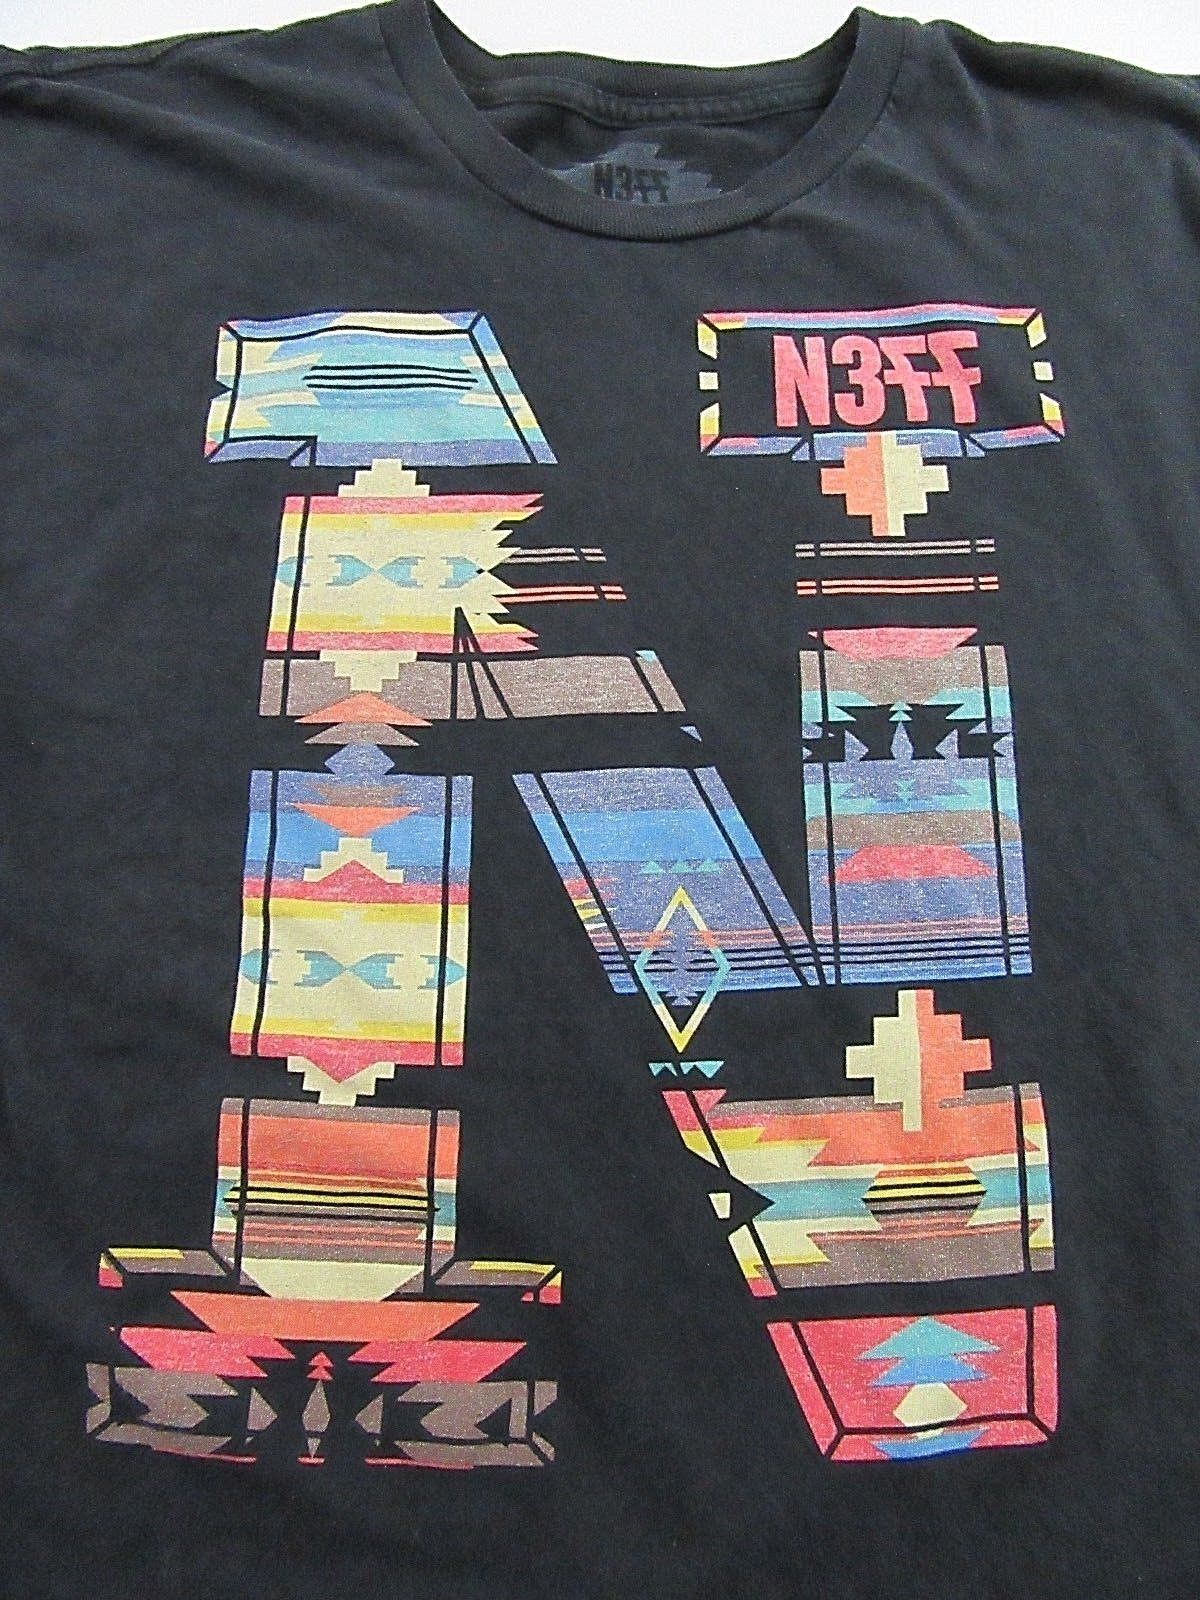 Gildan NEFF Southwest Native American Navajo Style Graphic T Shirt Size L